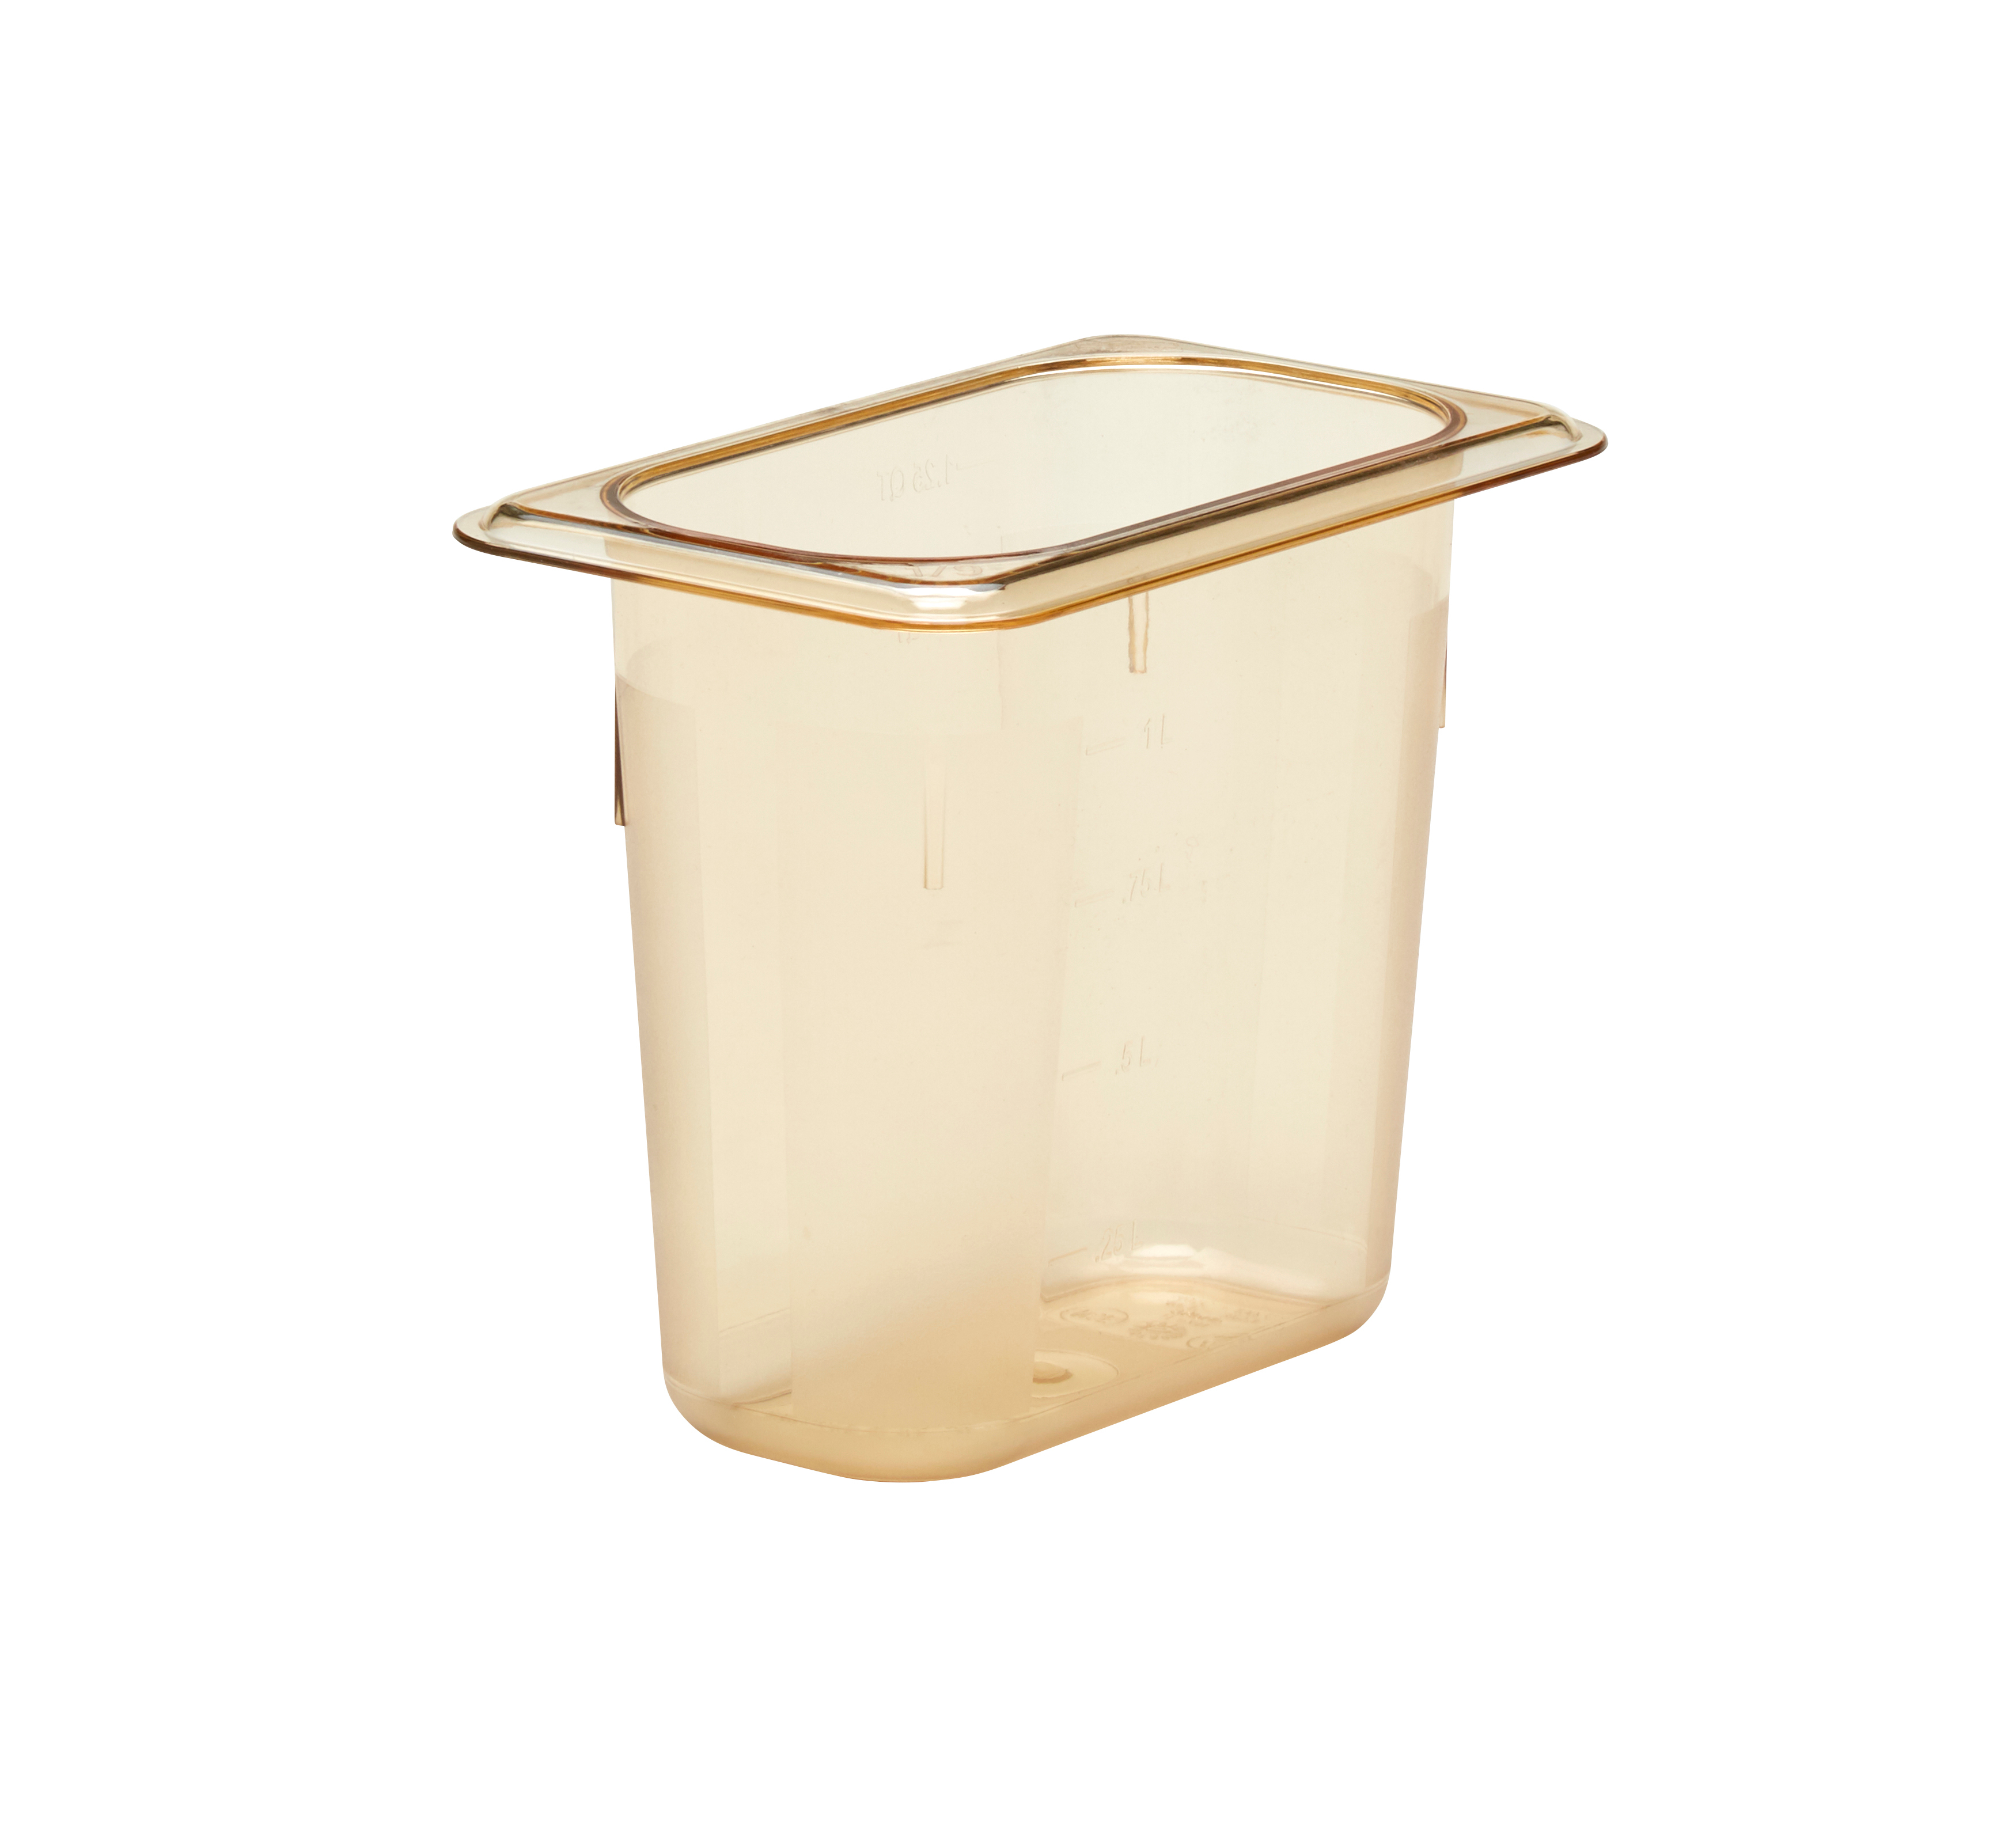 Cambro 96PHP150 food/beverage storage container